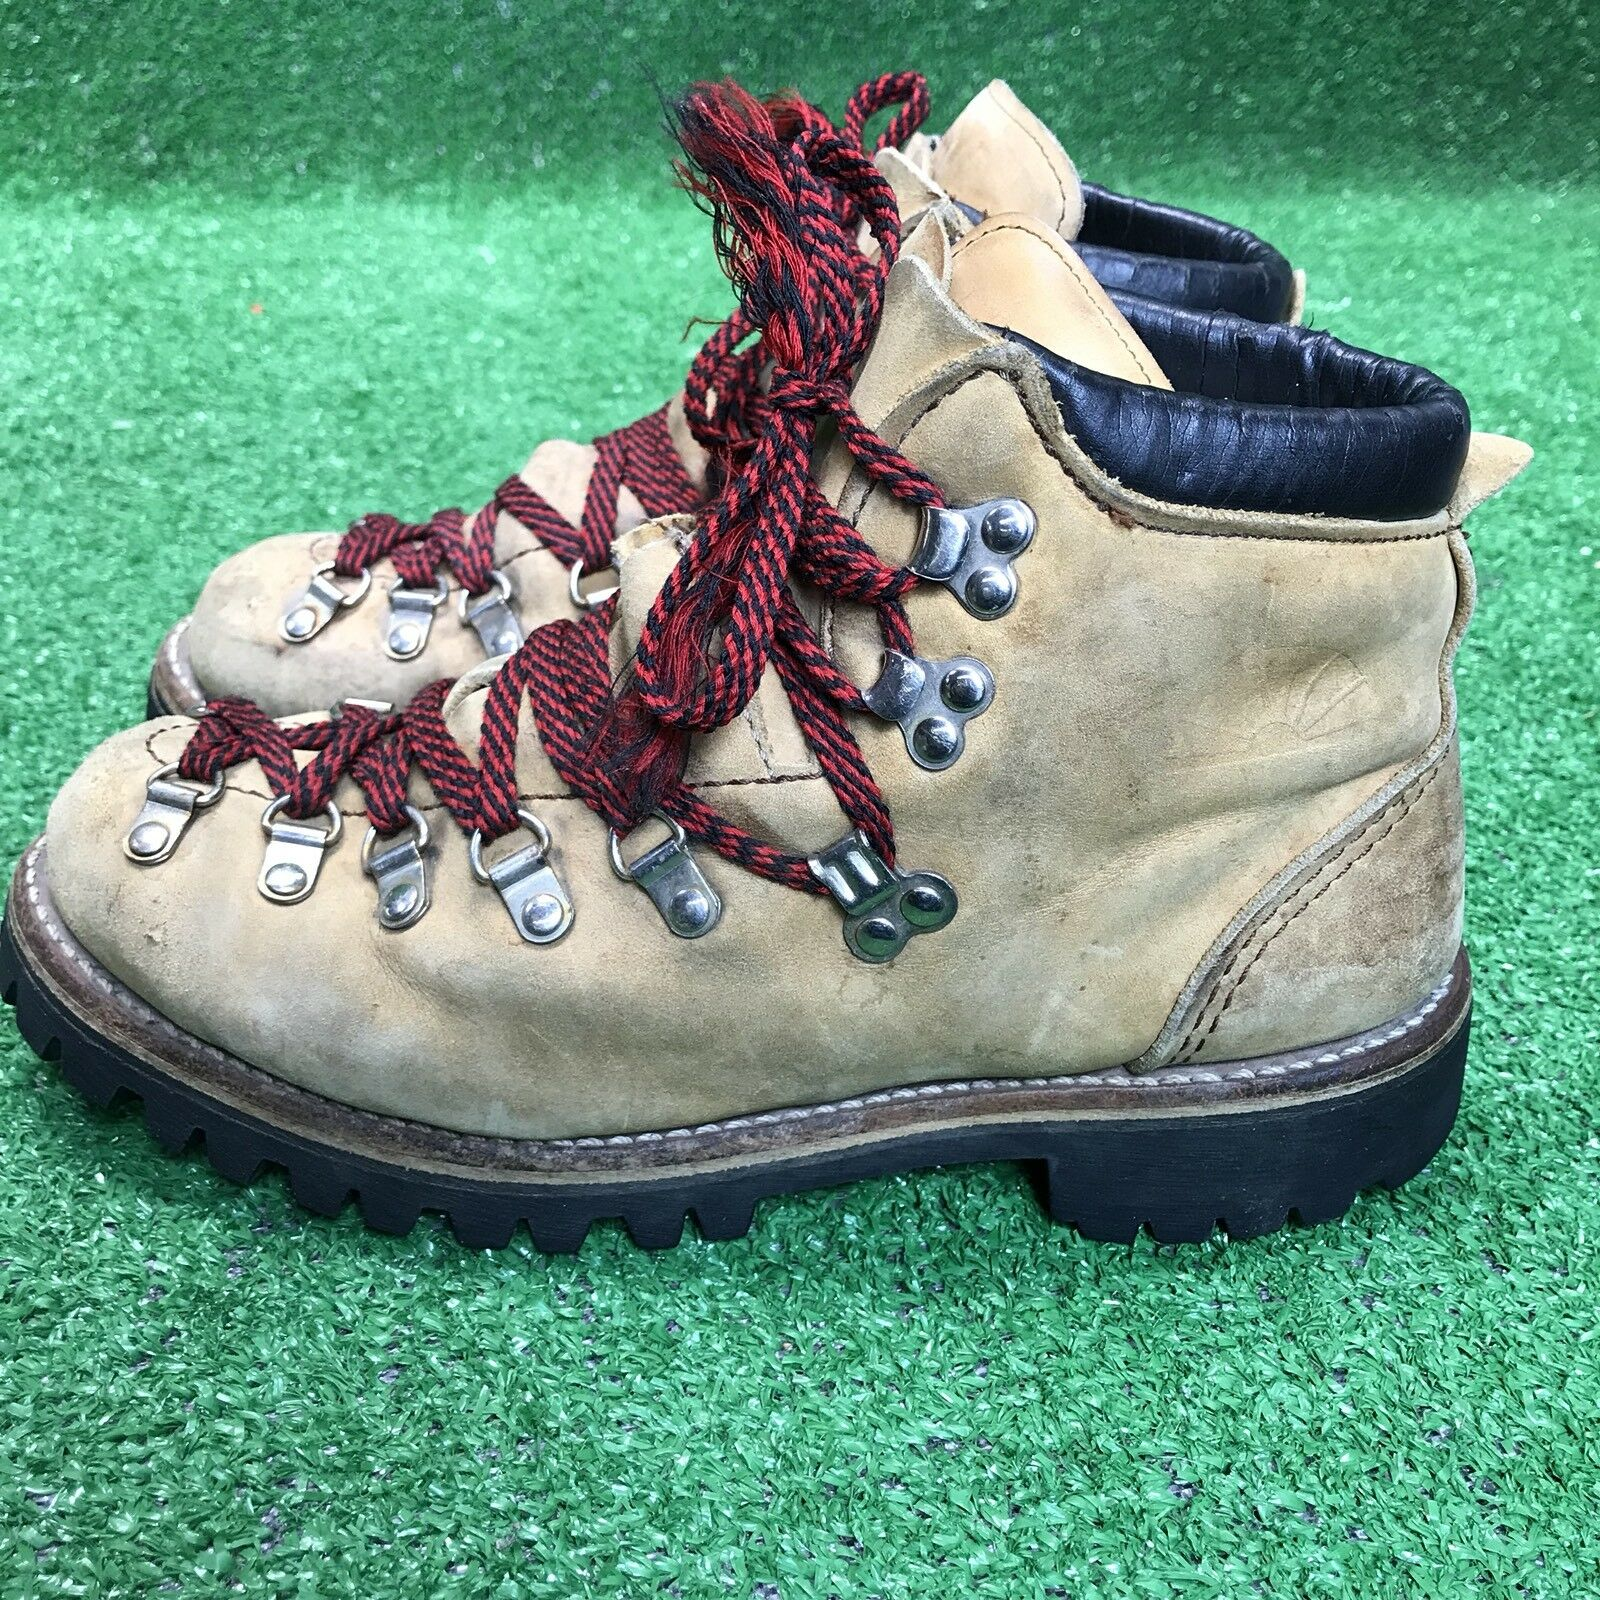 Vintage Mountaineering Hiking Boots Leather Vibram  Size 7 D Men's Fast Ship wow